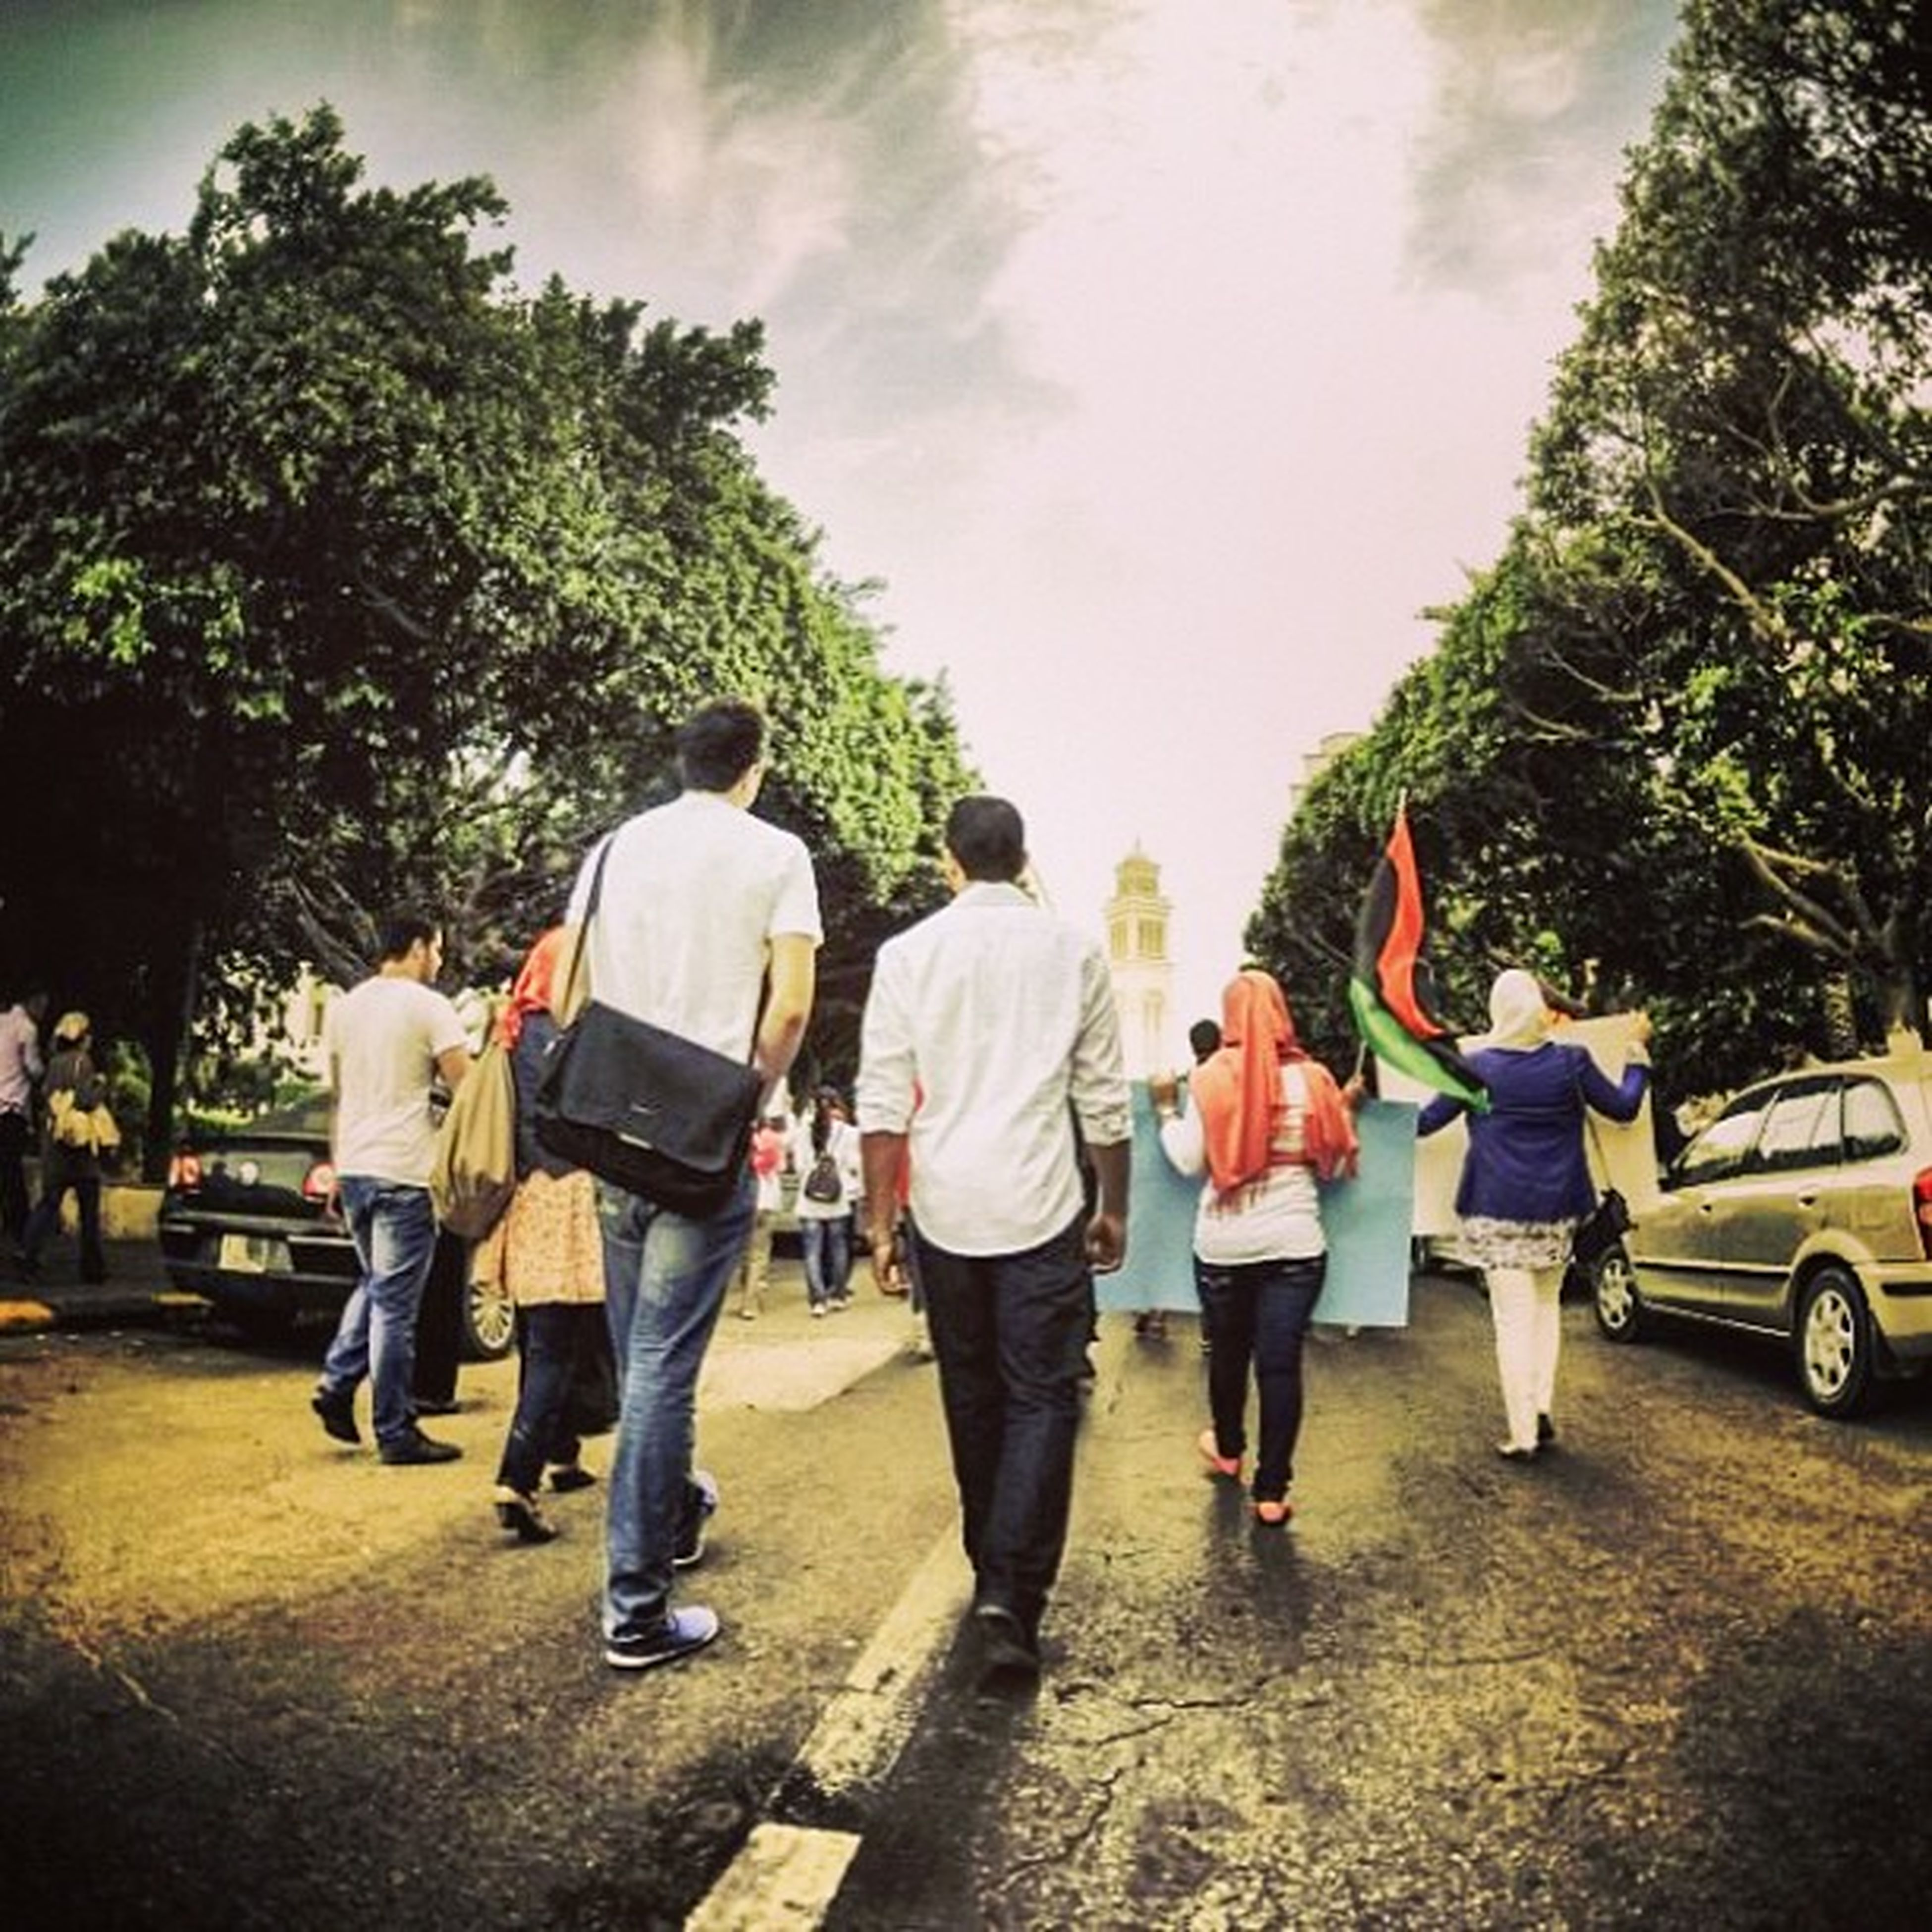 men, person, lifestyles, walking, large group of people, tree, leisure activity, togetherness, street, full length, sky, rear view, road, casual clothing, transportation, medium group of people, group of people, travel, mixed age range